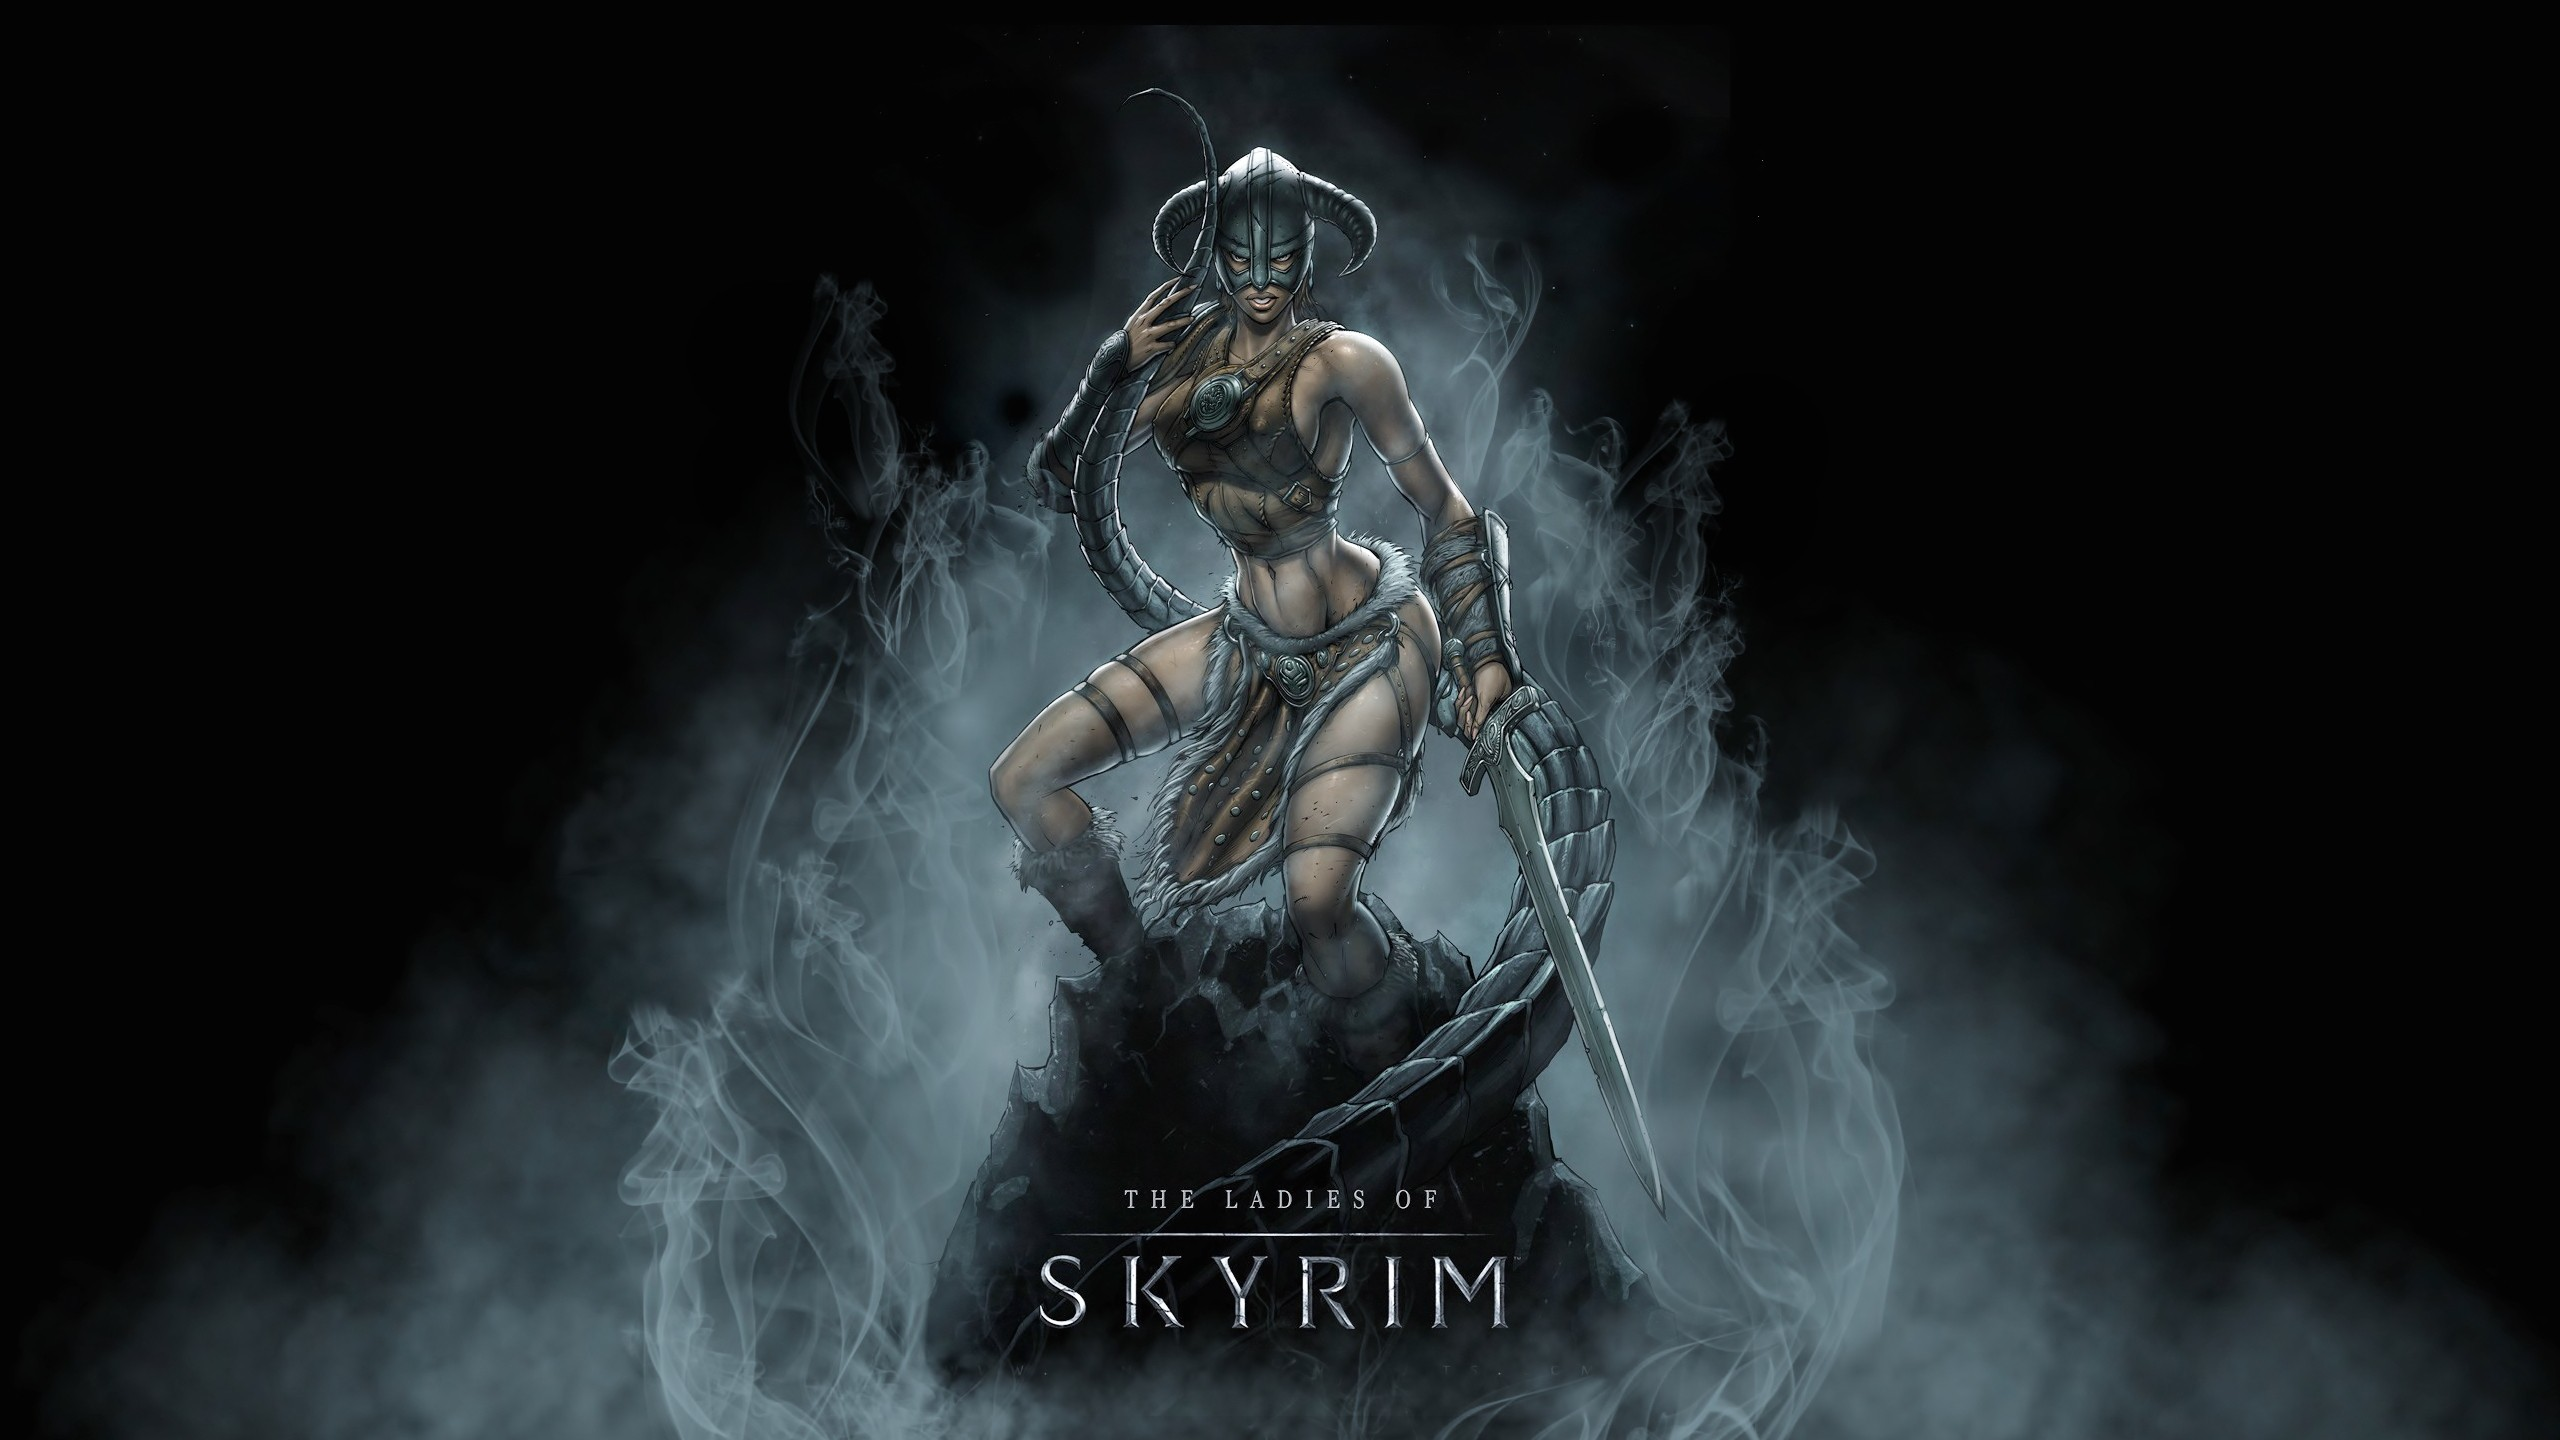 skyrim fan art wallpaper, skyrim backround